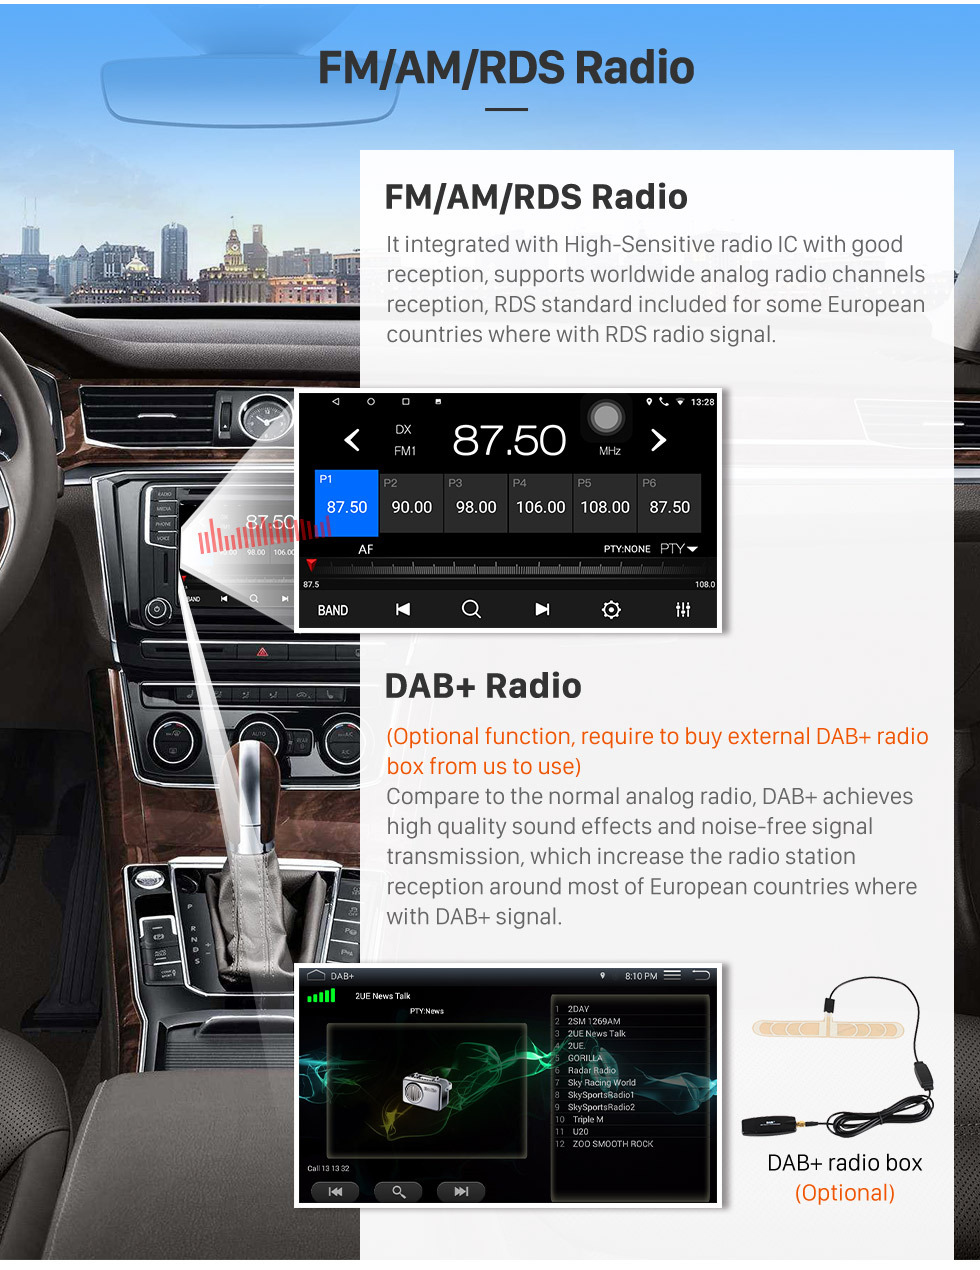 Seicane 9 Inch OEM Android 8.1 Radio GPS Navigation system For 1998-2005 Mercedes Benz S Class W220 S280 S320 S350 S400 S430 S500 S600 S55 AMG  S63 AMG S65 AMG with Bluetooth HD Touch Screen TPMS DVR OBD II Rear camera AUX 3G WiFi